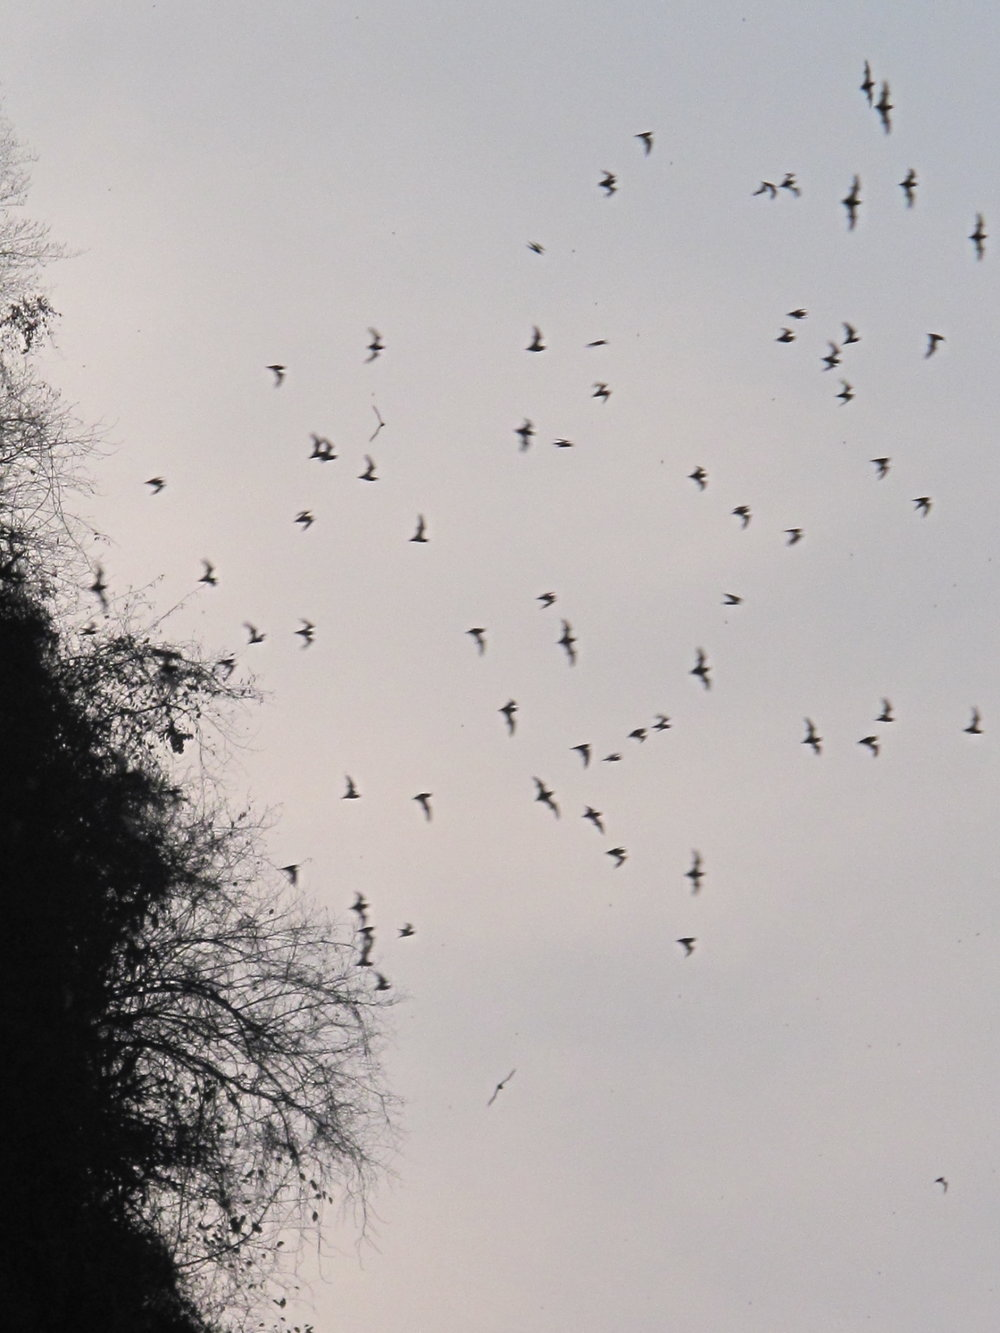 Bats flying out of a cave at Mt Sampeou, Battambang